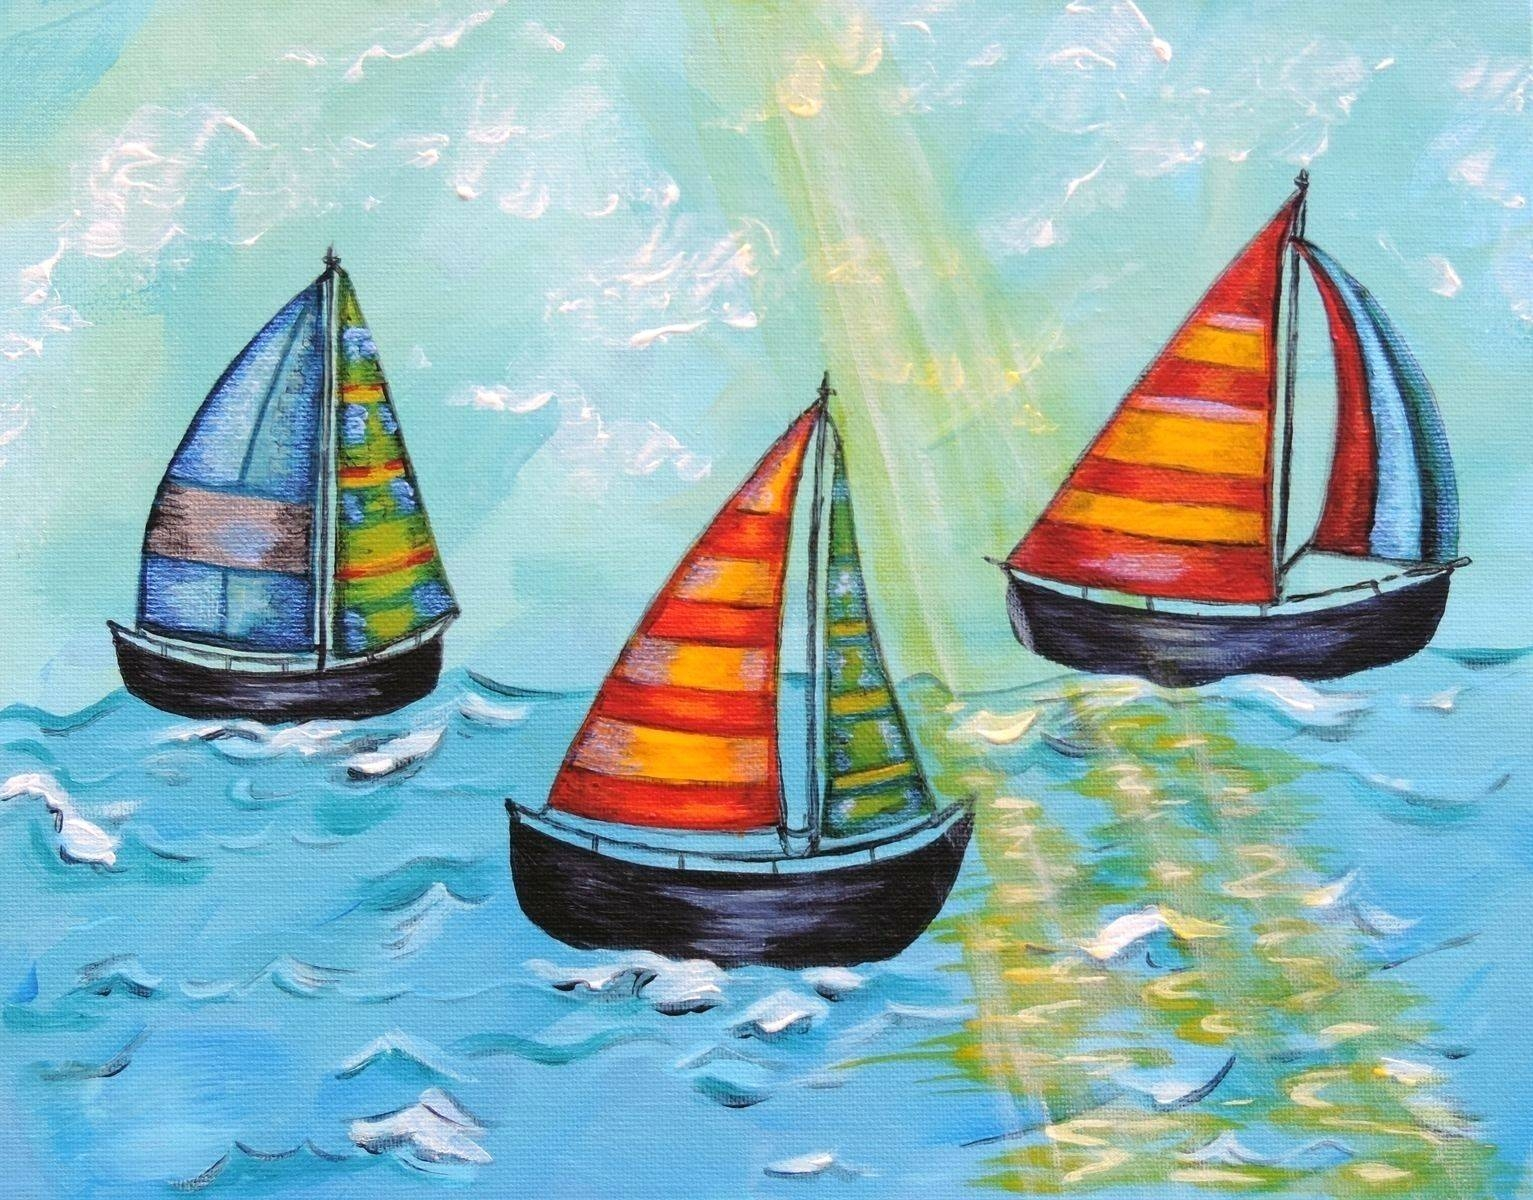 Wall Arts ~ Metal Boat Wall Art Sailboat Wall Art Metal 5 Piece In Most Popular Metal Wall Art Boats (View 11 of 20)